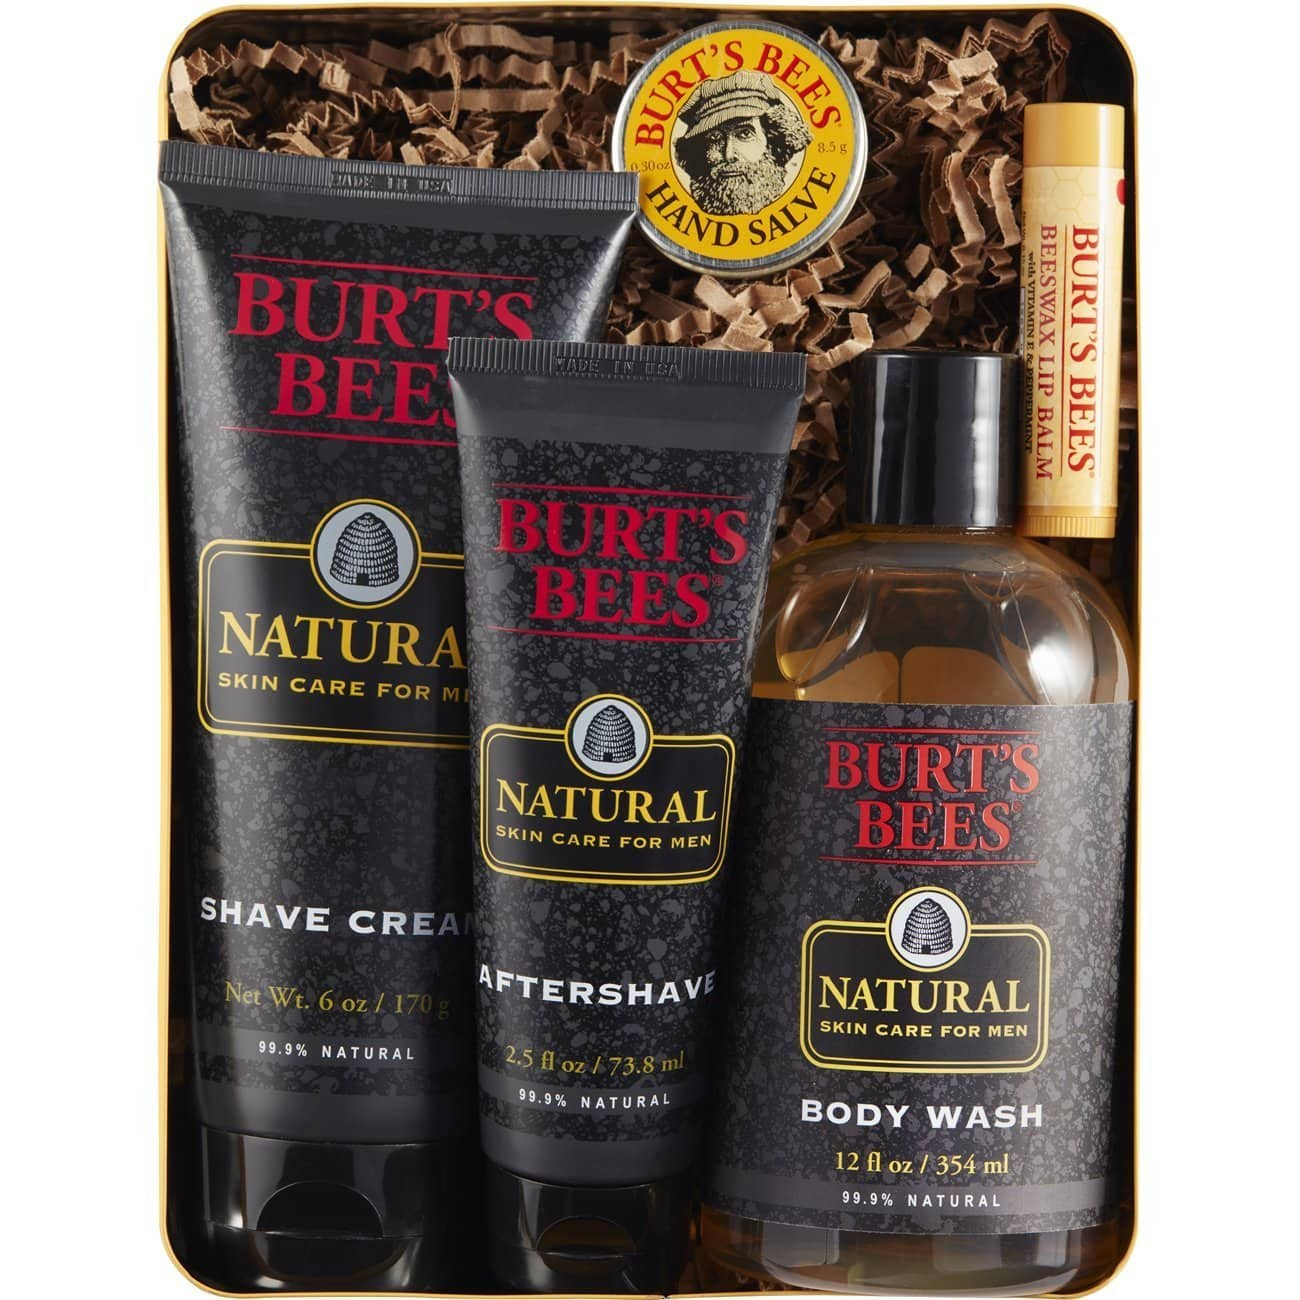 Burt's Bees Men's or Classic Gift Sets in Tin Box $20 (Men's) or $21 (Classic) AC @Amazon